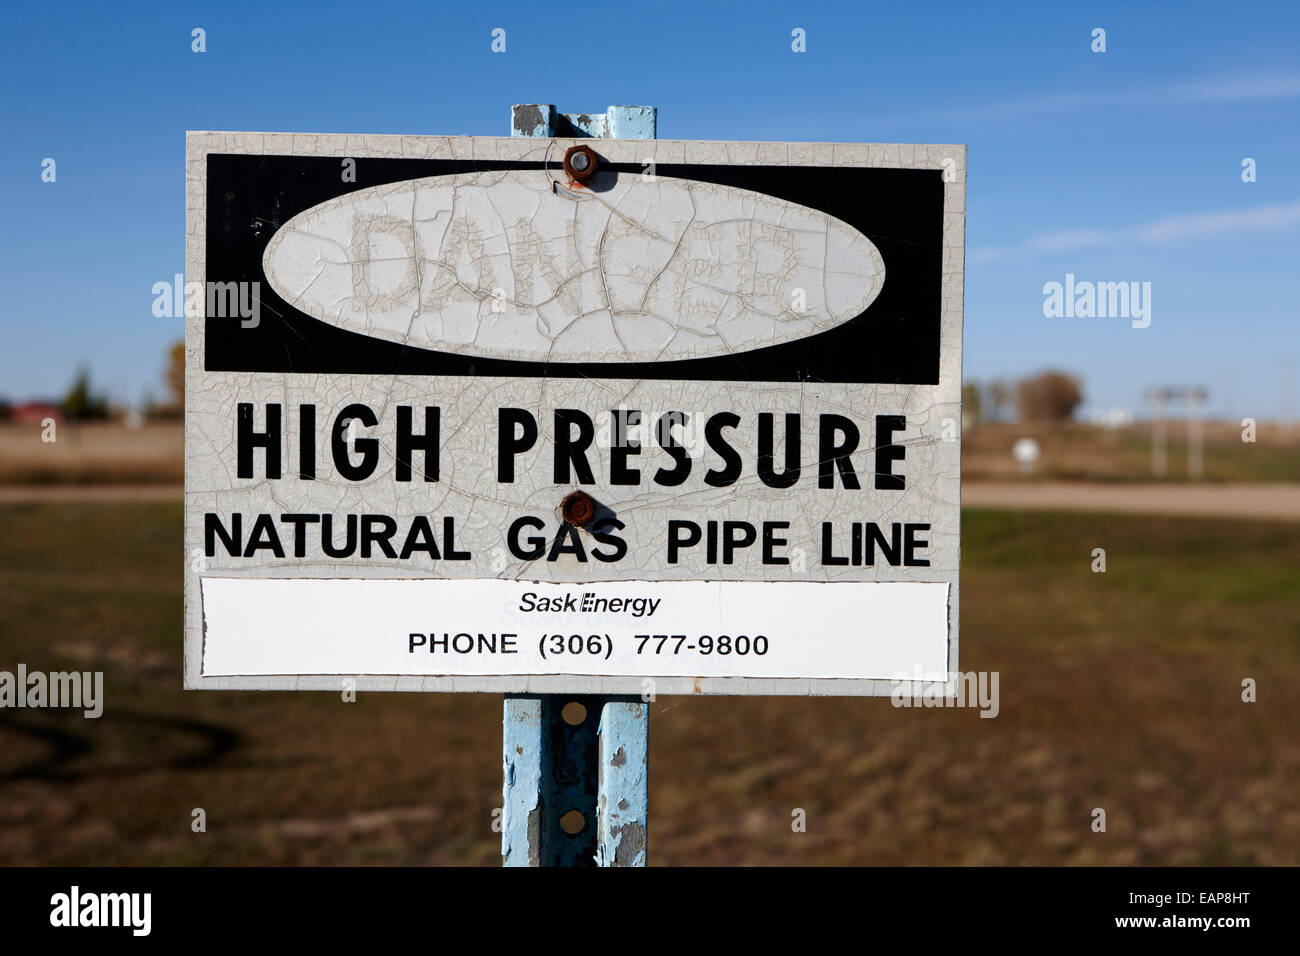 danger sign for high pressure natural gas pipeline underground bengough Saskatchewan Canada - Stock Image